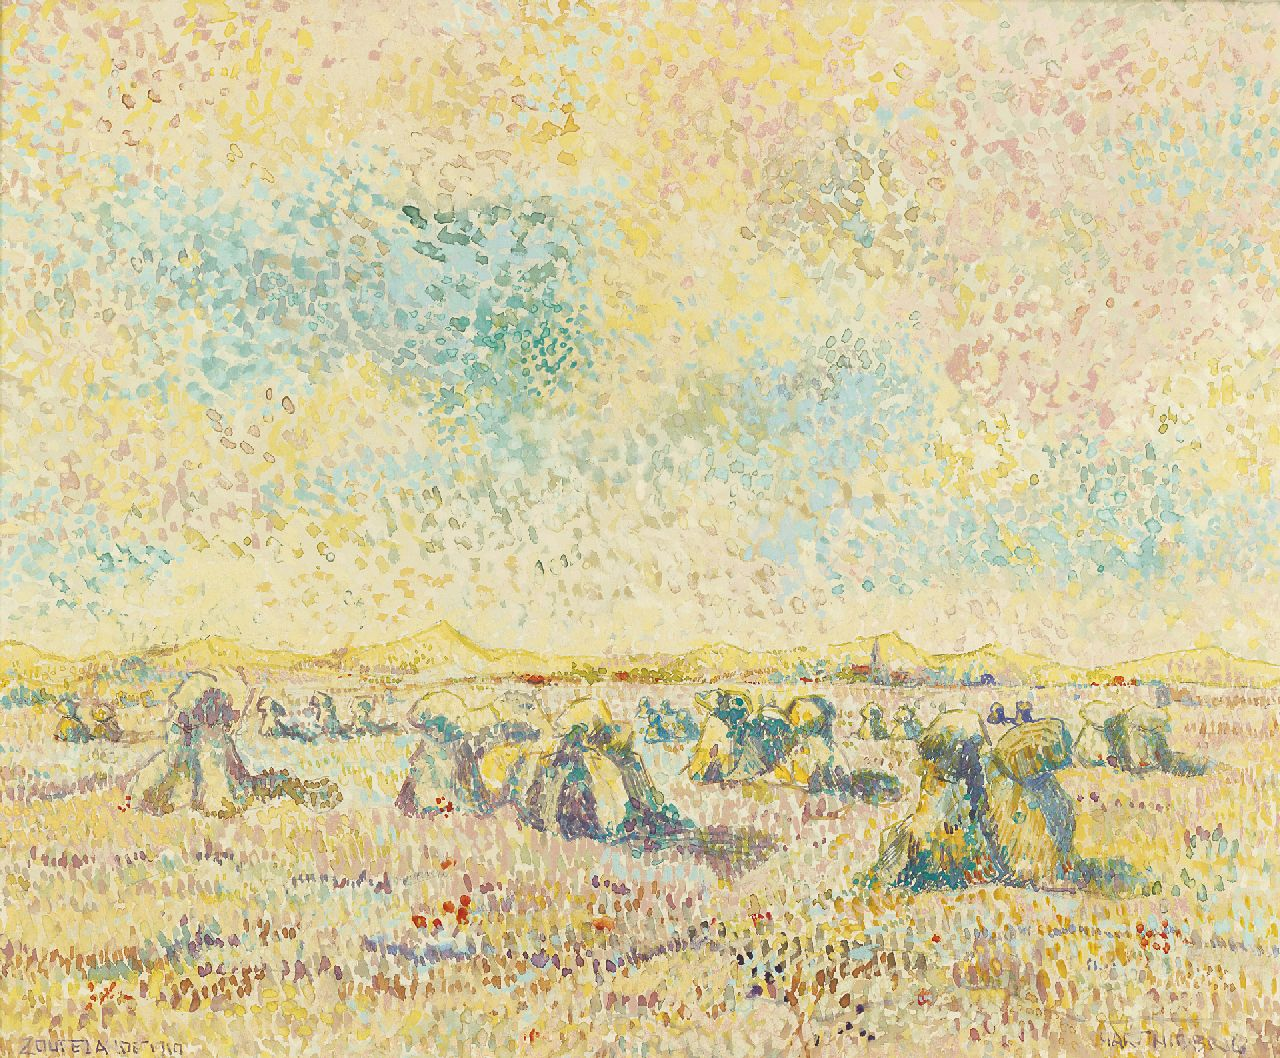 Hart Nibbrig F.  | Ferdinand Hart Nibbrig, Harvest time in the dunes of Zoutelande, watercolour on paper 45.5 x 55.0 cm, signed l.r. and dated 'Zoutelande 1910'